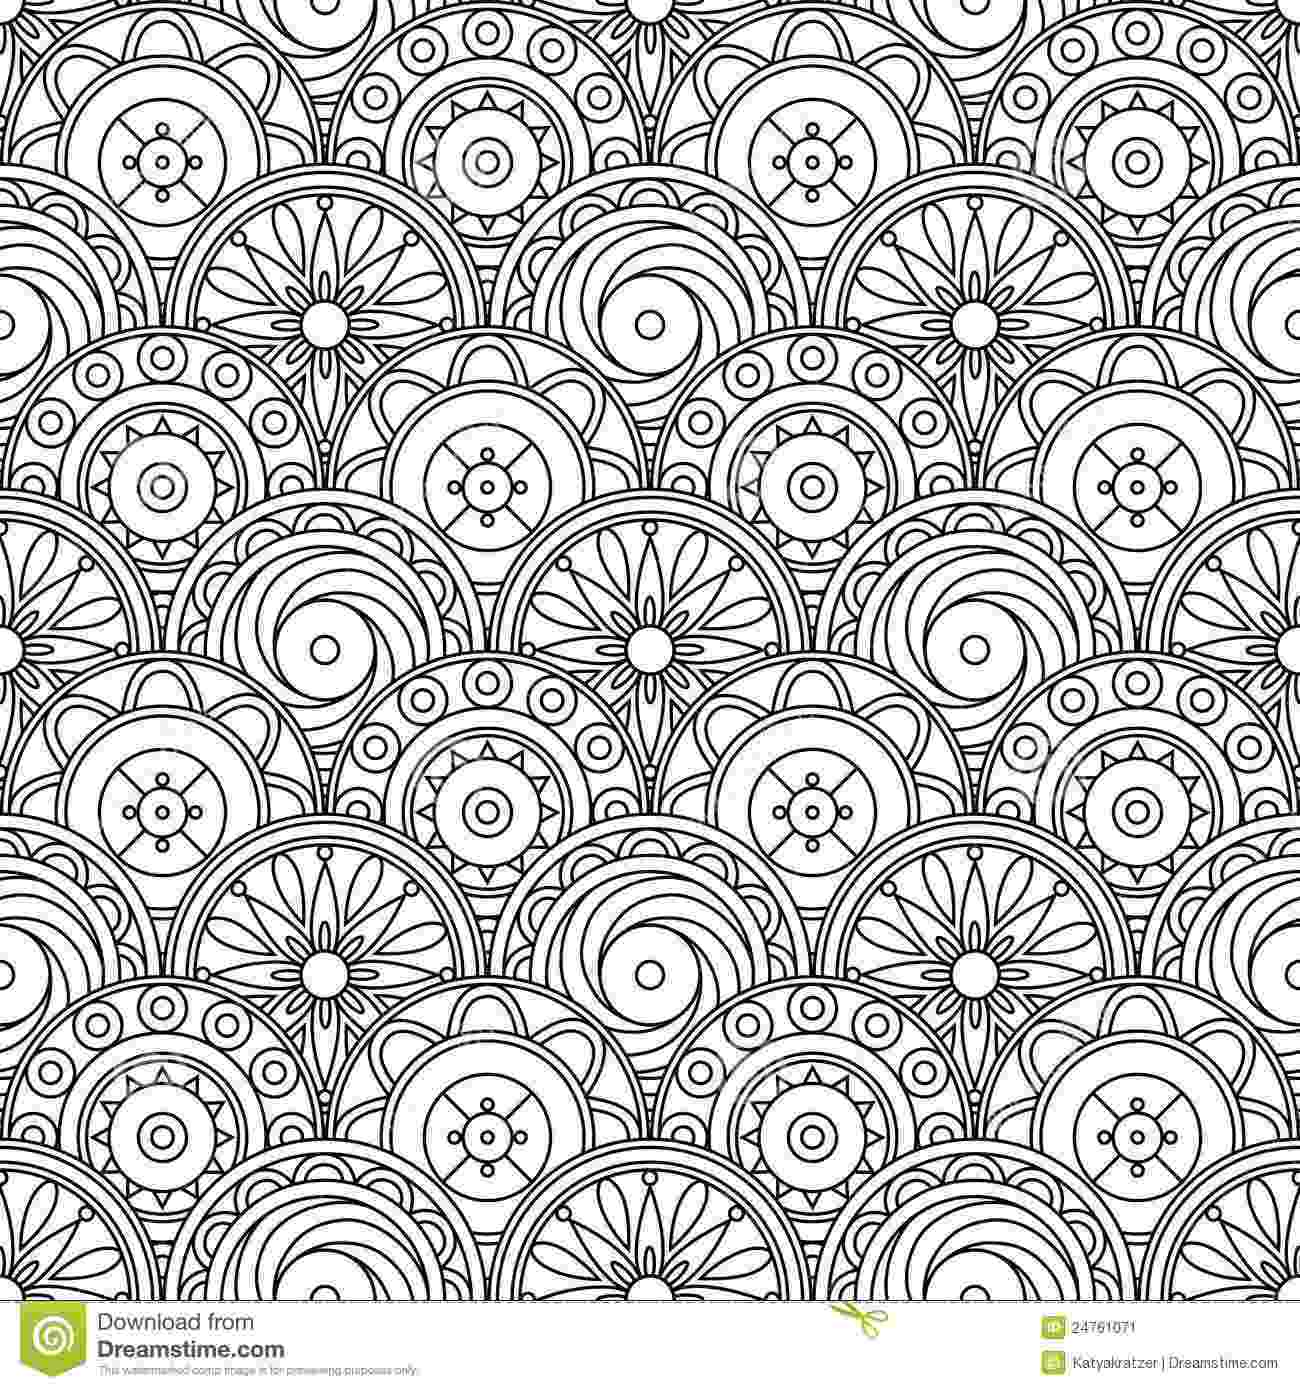 adult coloring pages abstract abstract doodle coloring pages colouring adult detailed abstract adult coloring pages